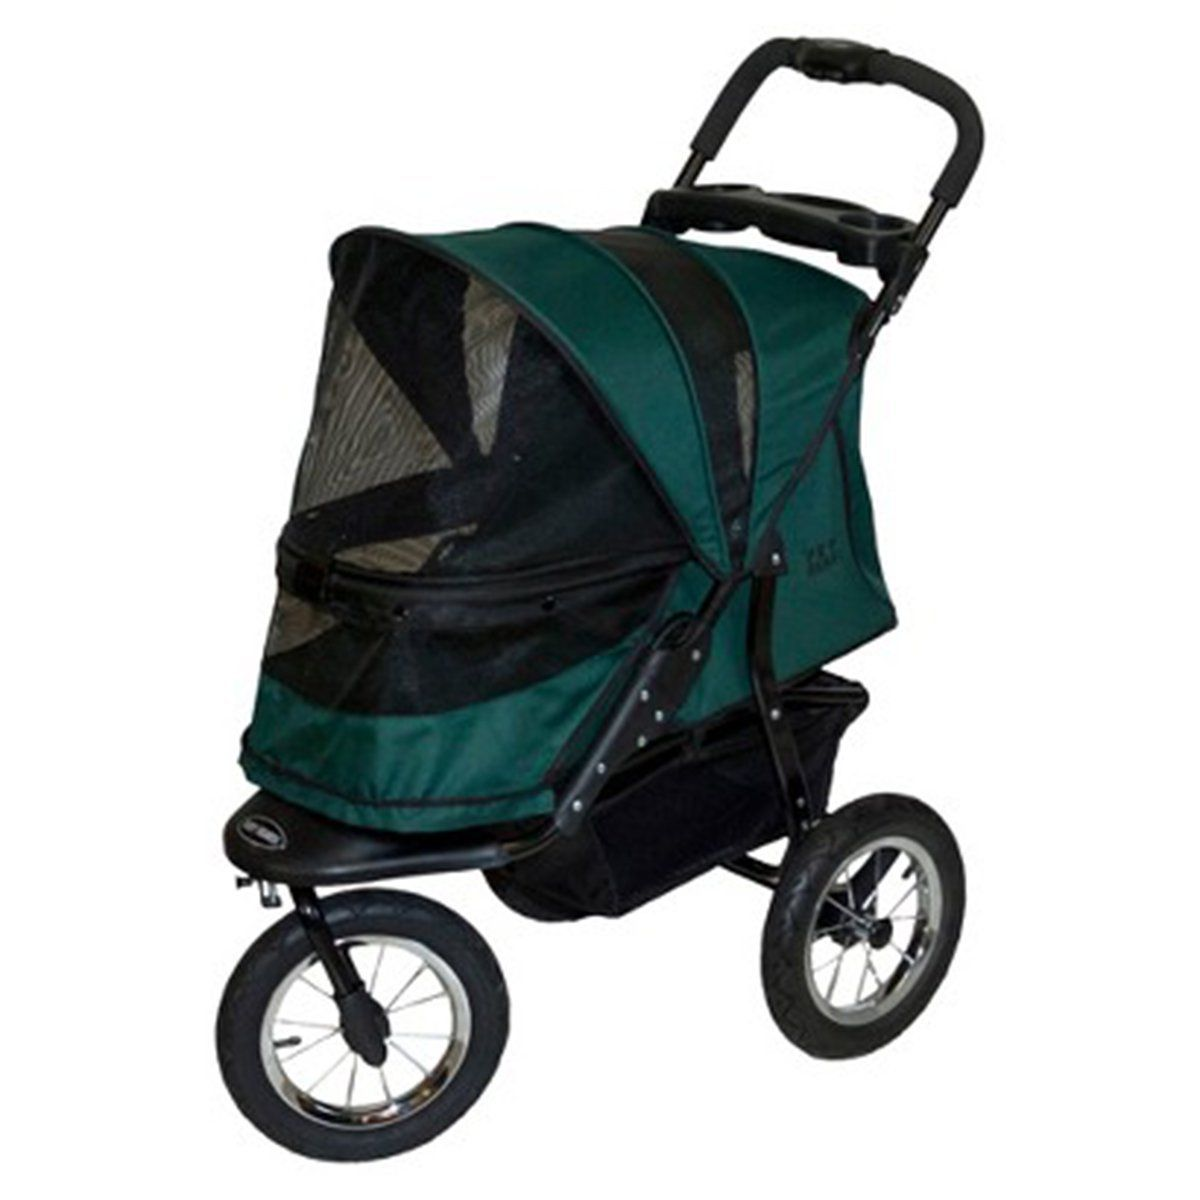 The green Pet Gear Jogger NoZip Pet Stroller >>> Amazing